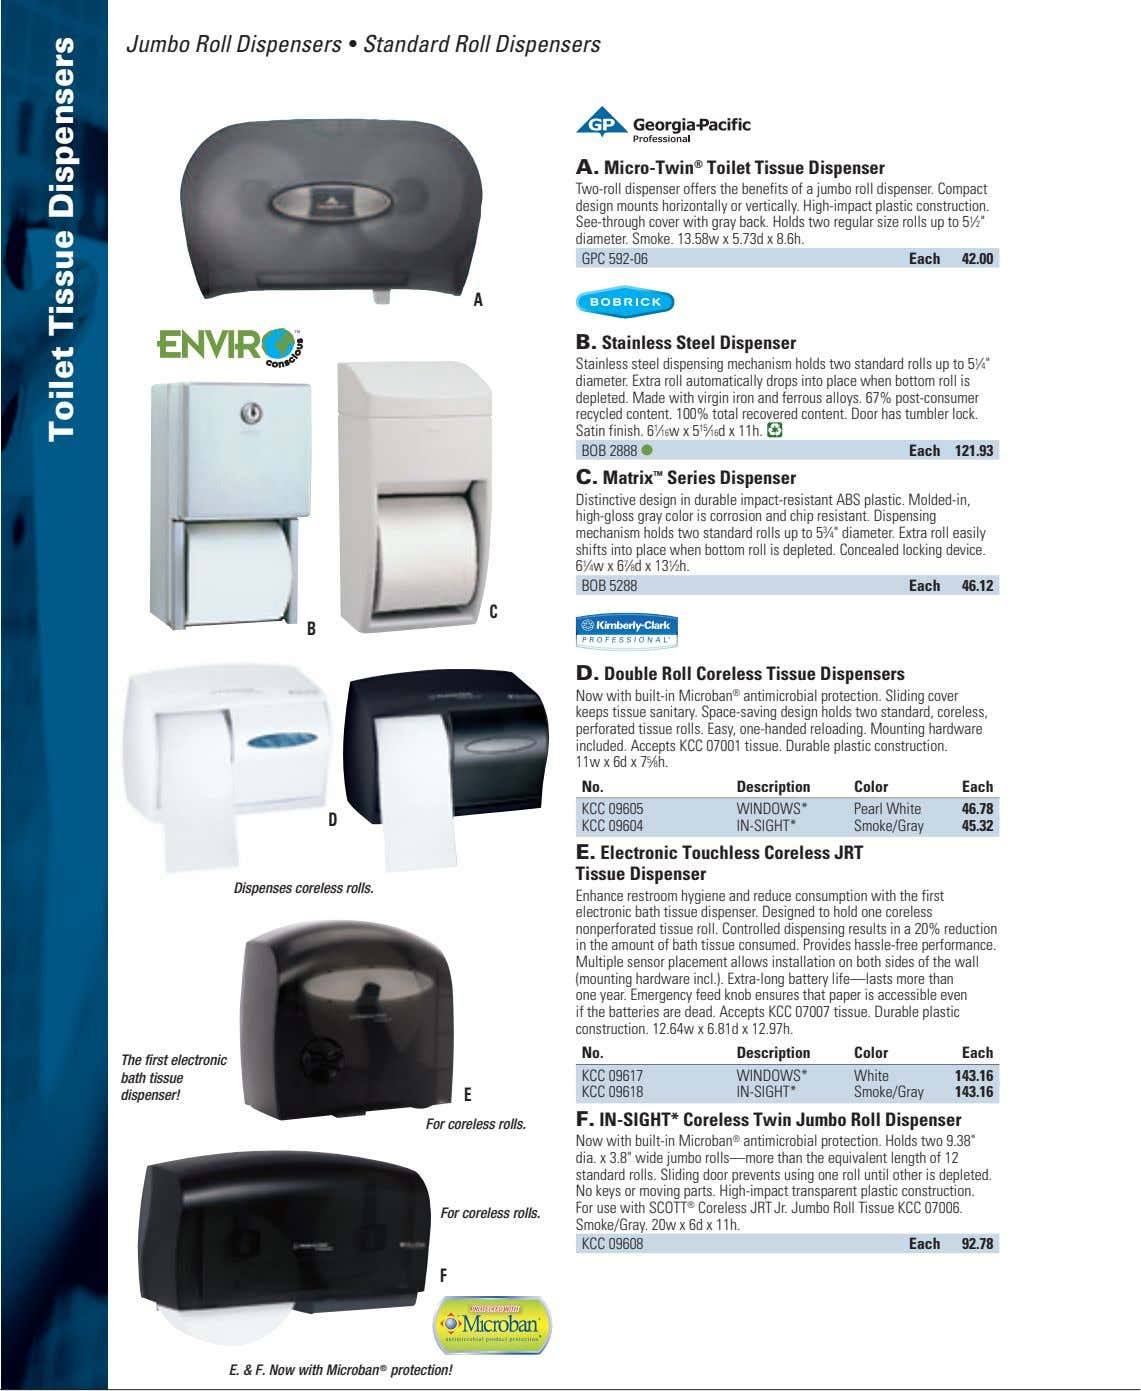 Jumbo Roll Dispensers • Standard Roll Dispensers A. Micro-Twin ® Toilet Tissue Dispenser Two-roll dispenser